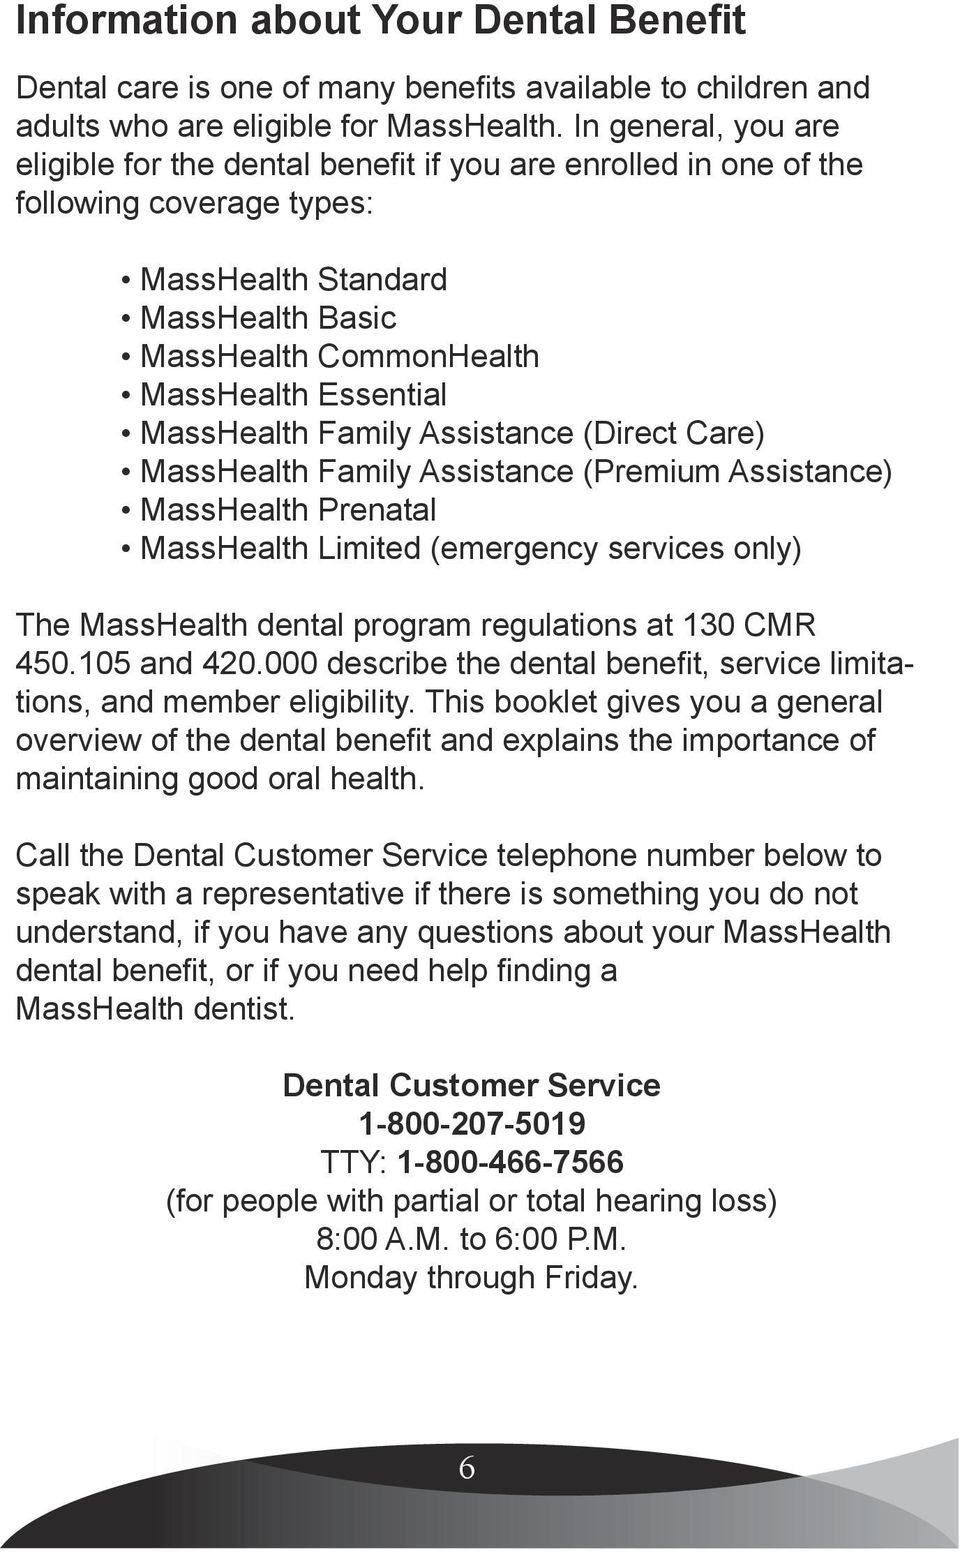 MassHealth Family Assistance (Direct Care) MassHealth Family Assistance (Premium Assistance) MassHealth Prenatal MassHealth Limited (emergency services only) The MassHealth dental program regulations